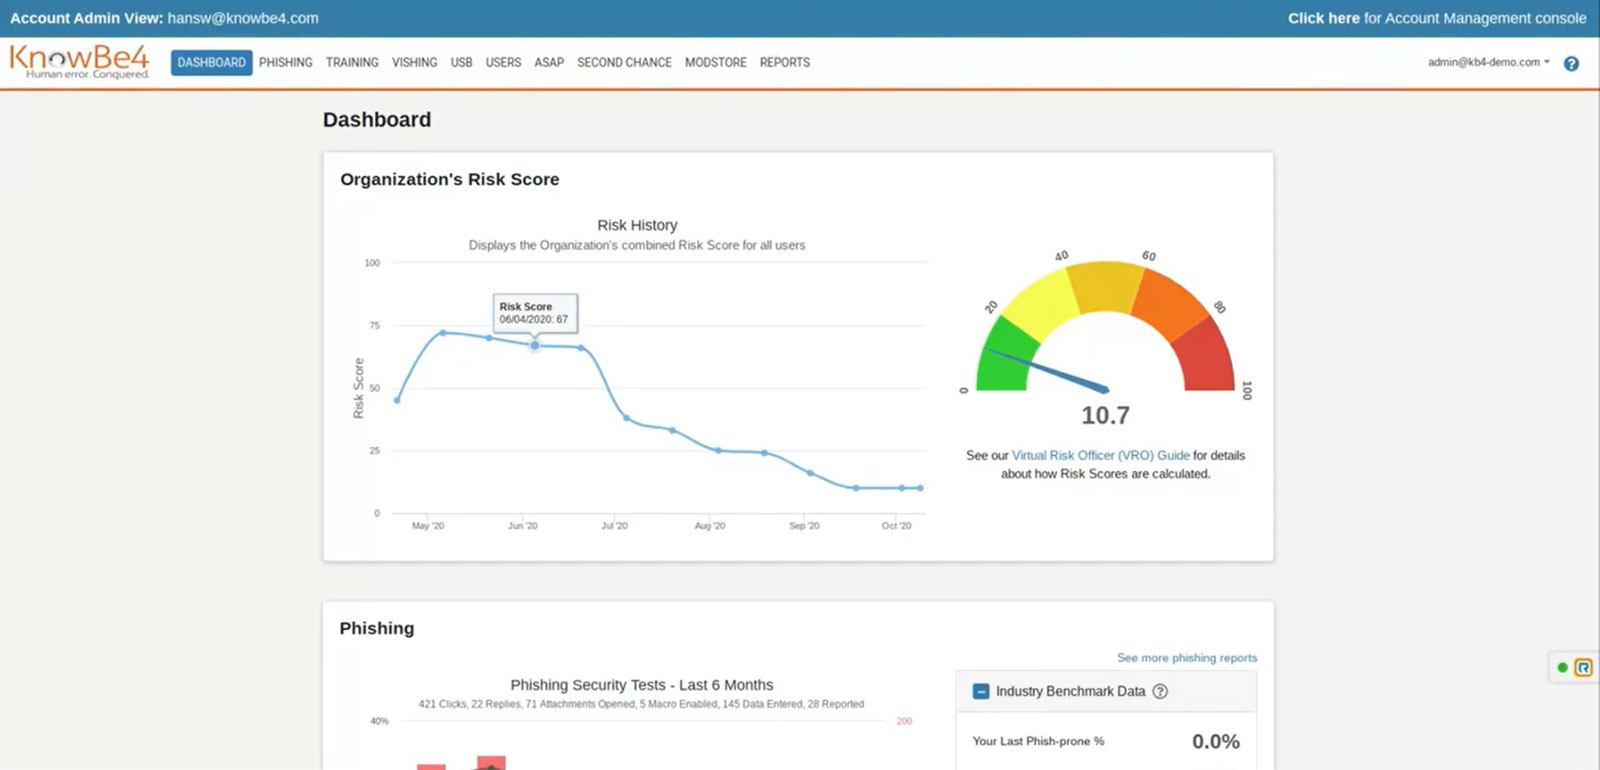 KnowBe4 Security Awareness - Organization's Risk Score | VanRoey.be